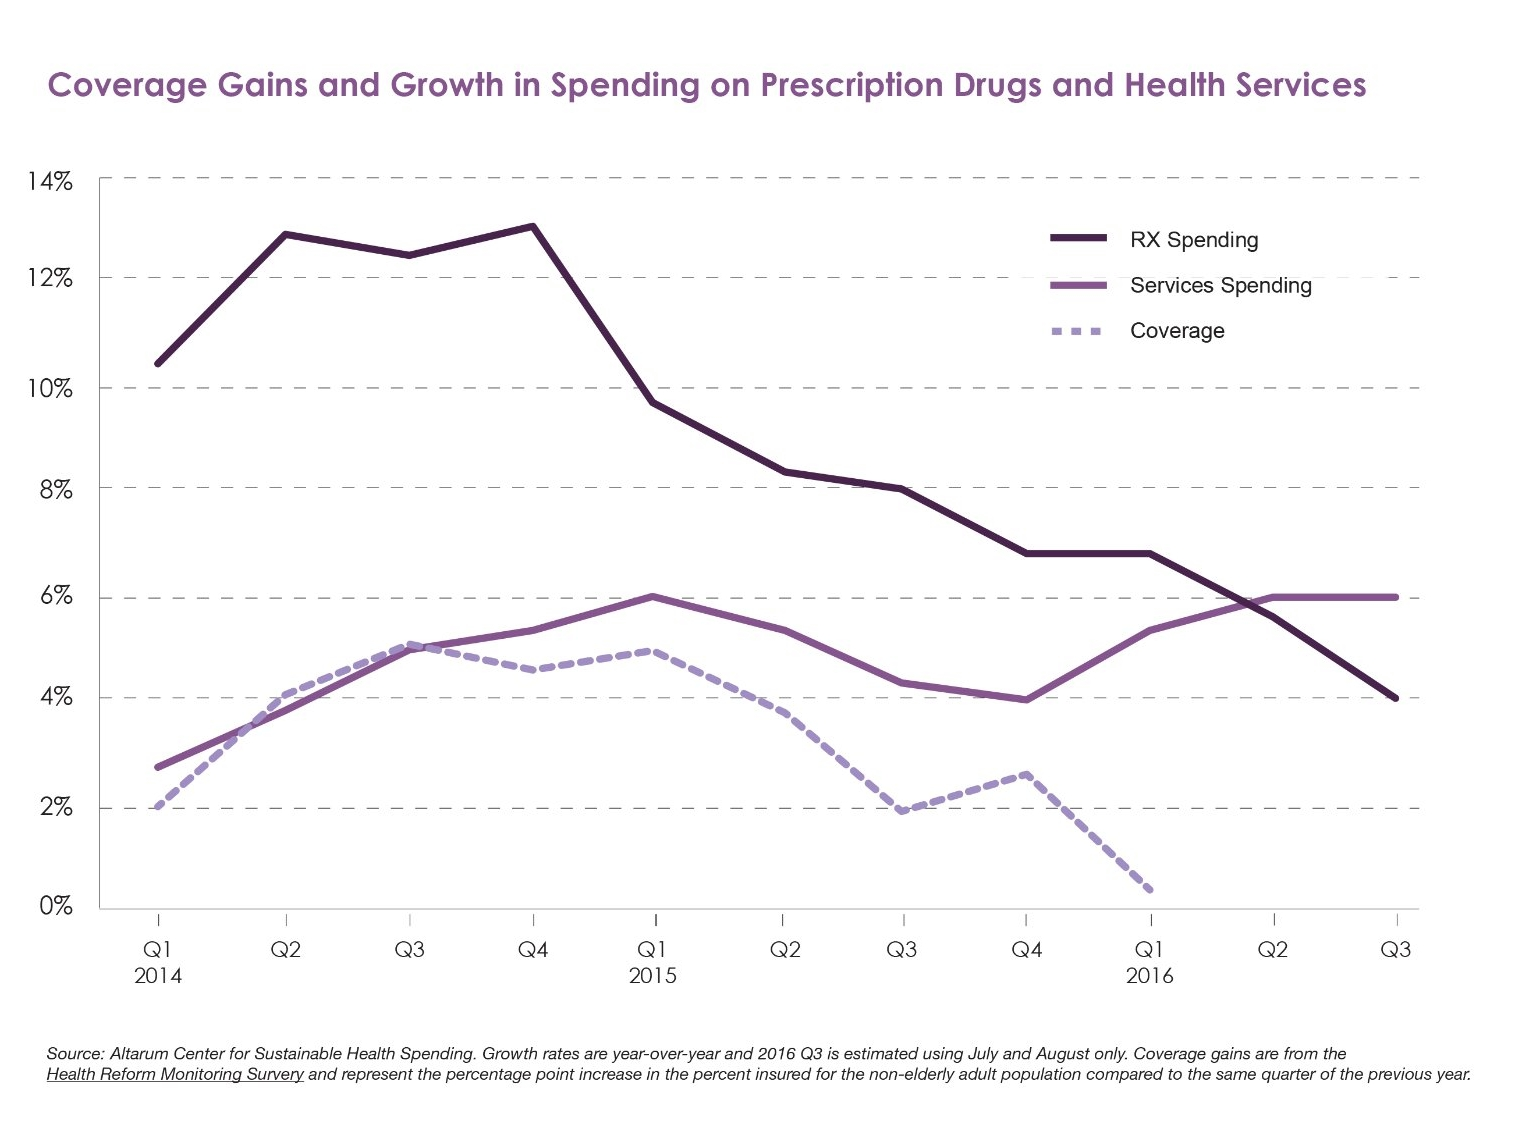 Graph showing coverage gains and growth in spending on prescription drugs and health services